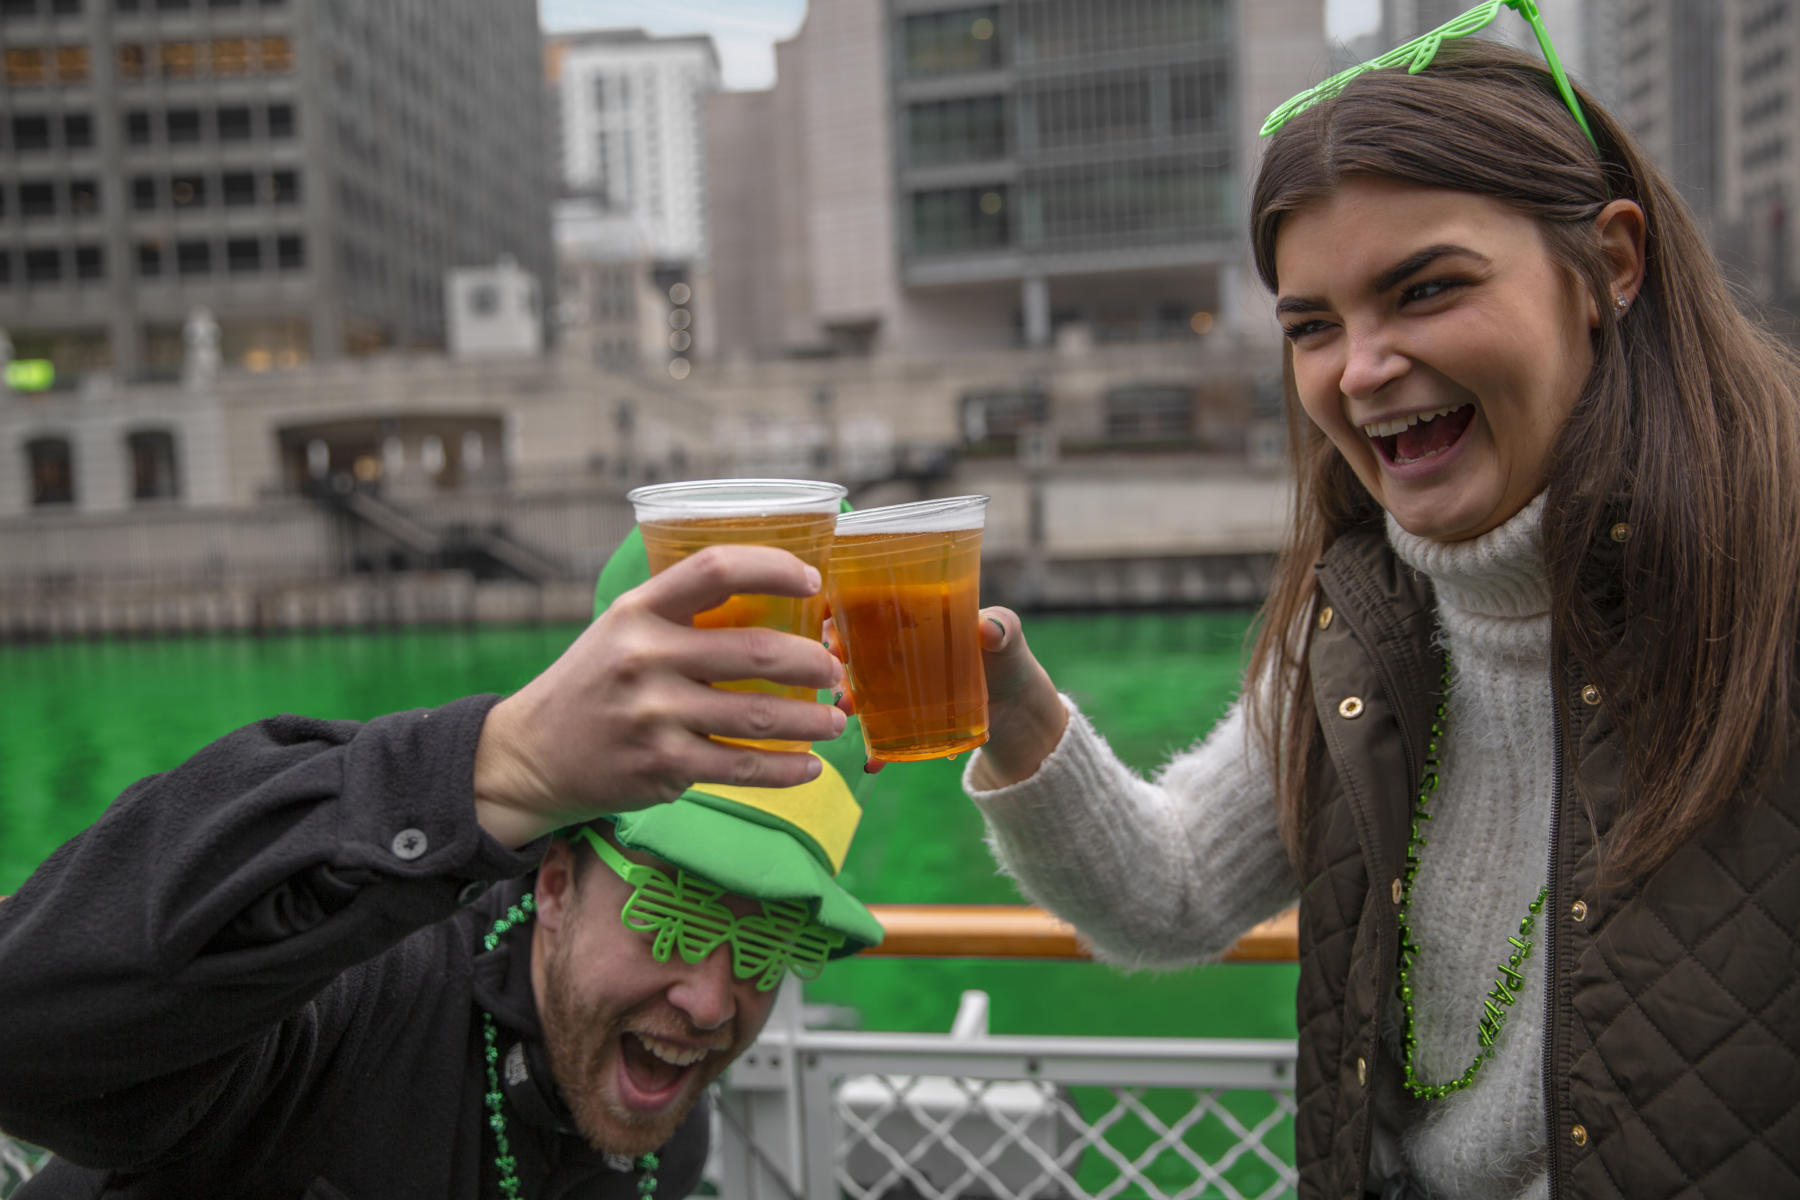 St. Patrick's Day Clover Cruise by Chicago's First Lady Cruises